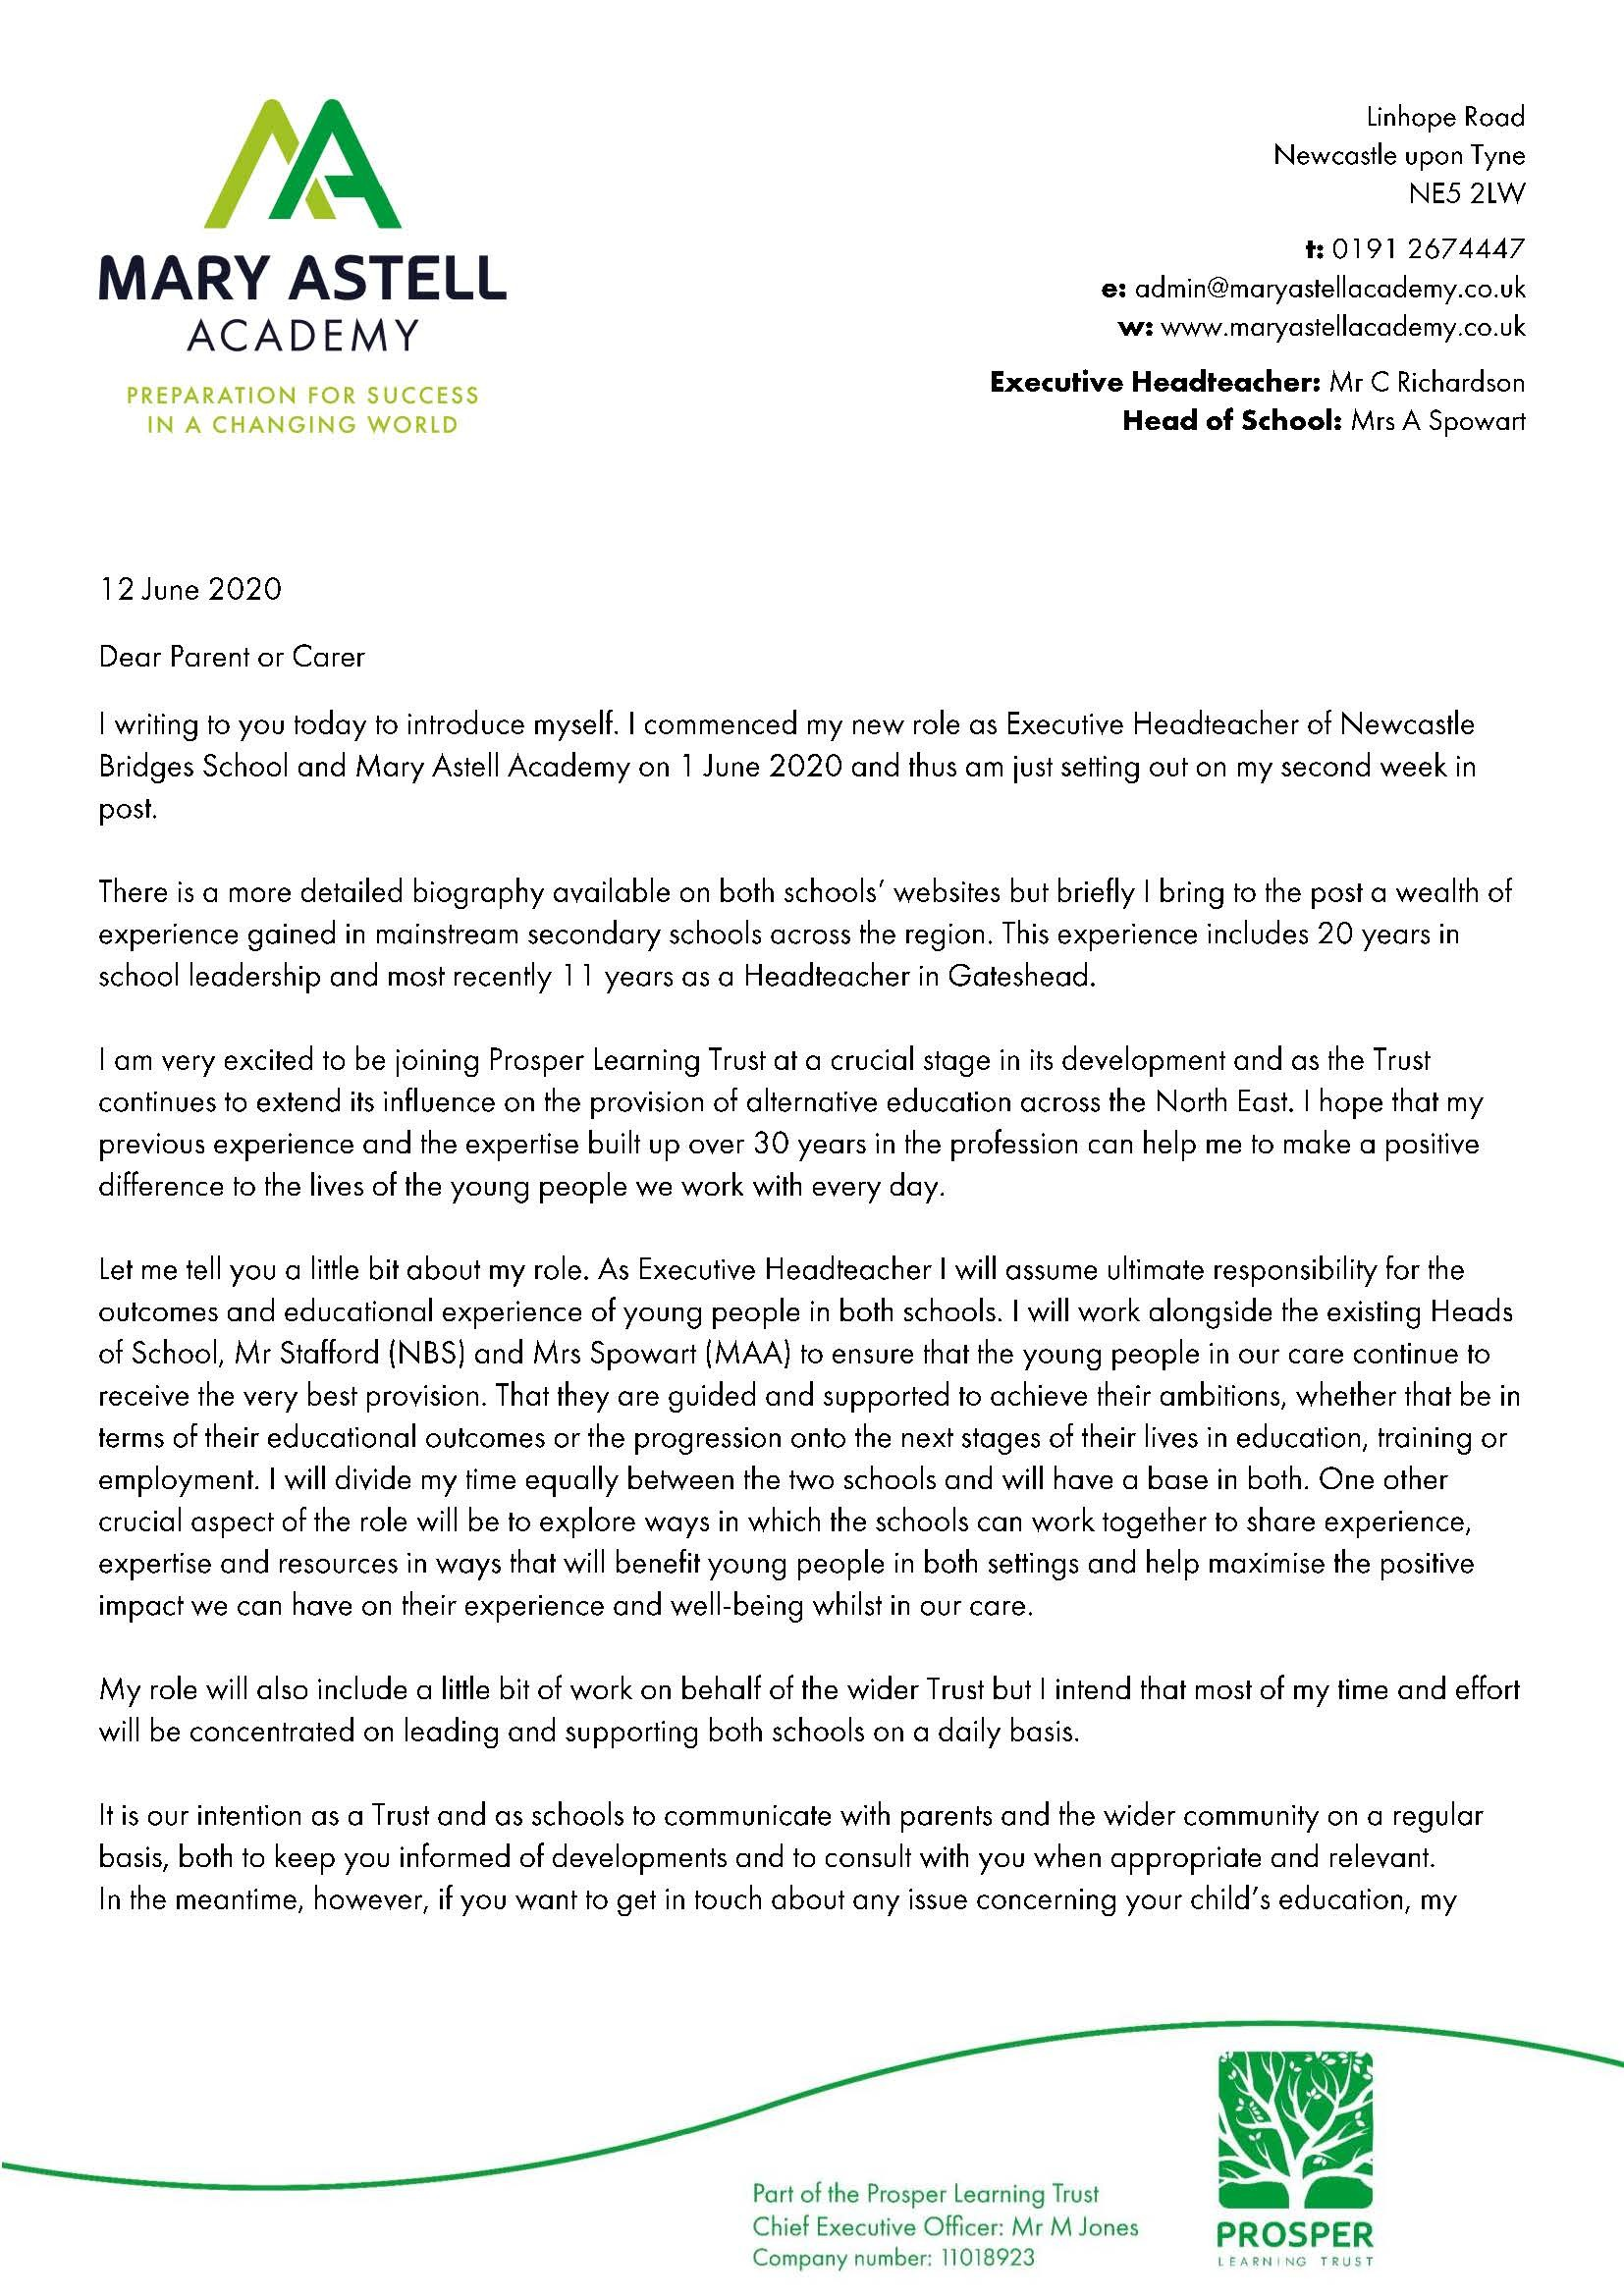 Letter from the Executive Headteacher